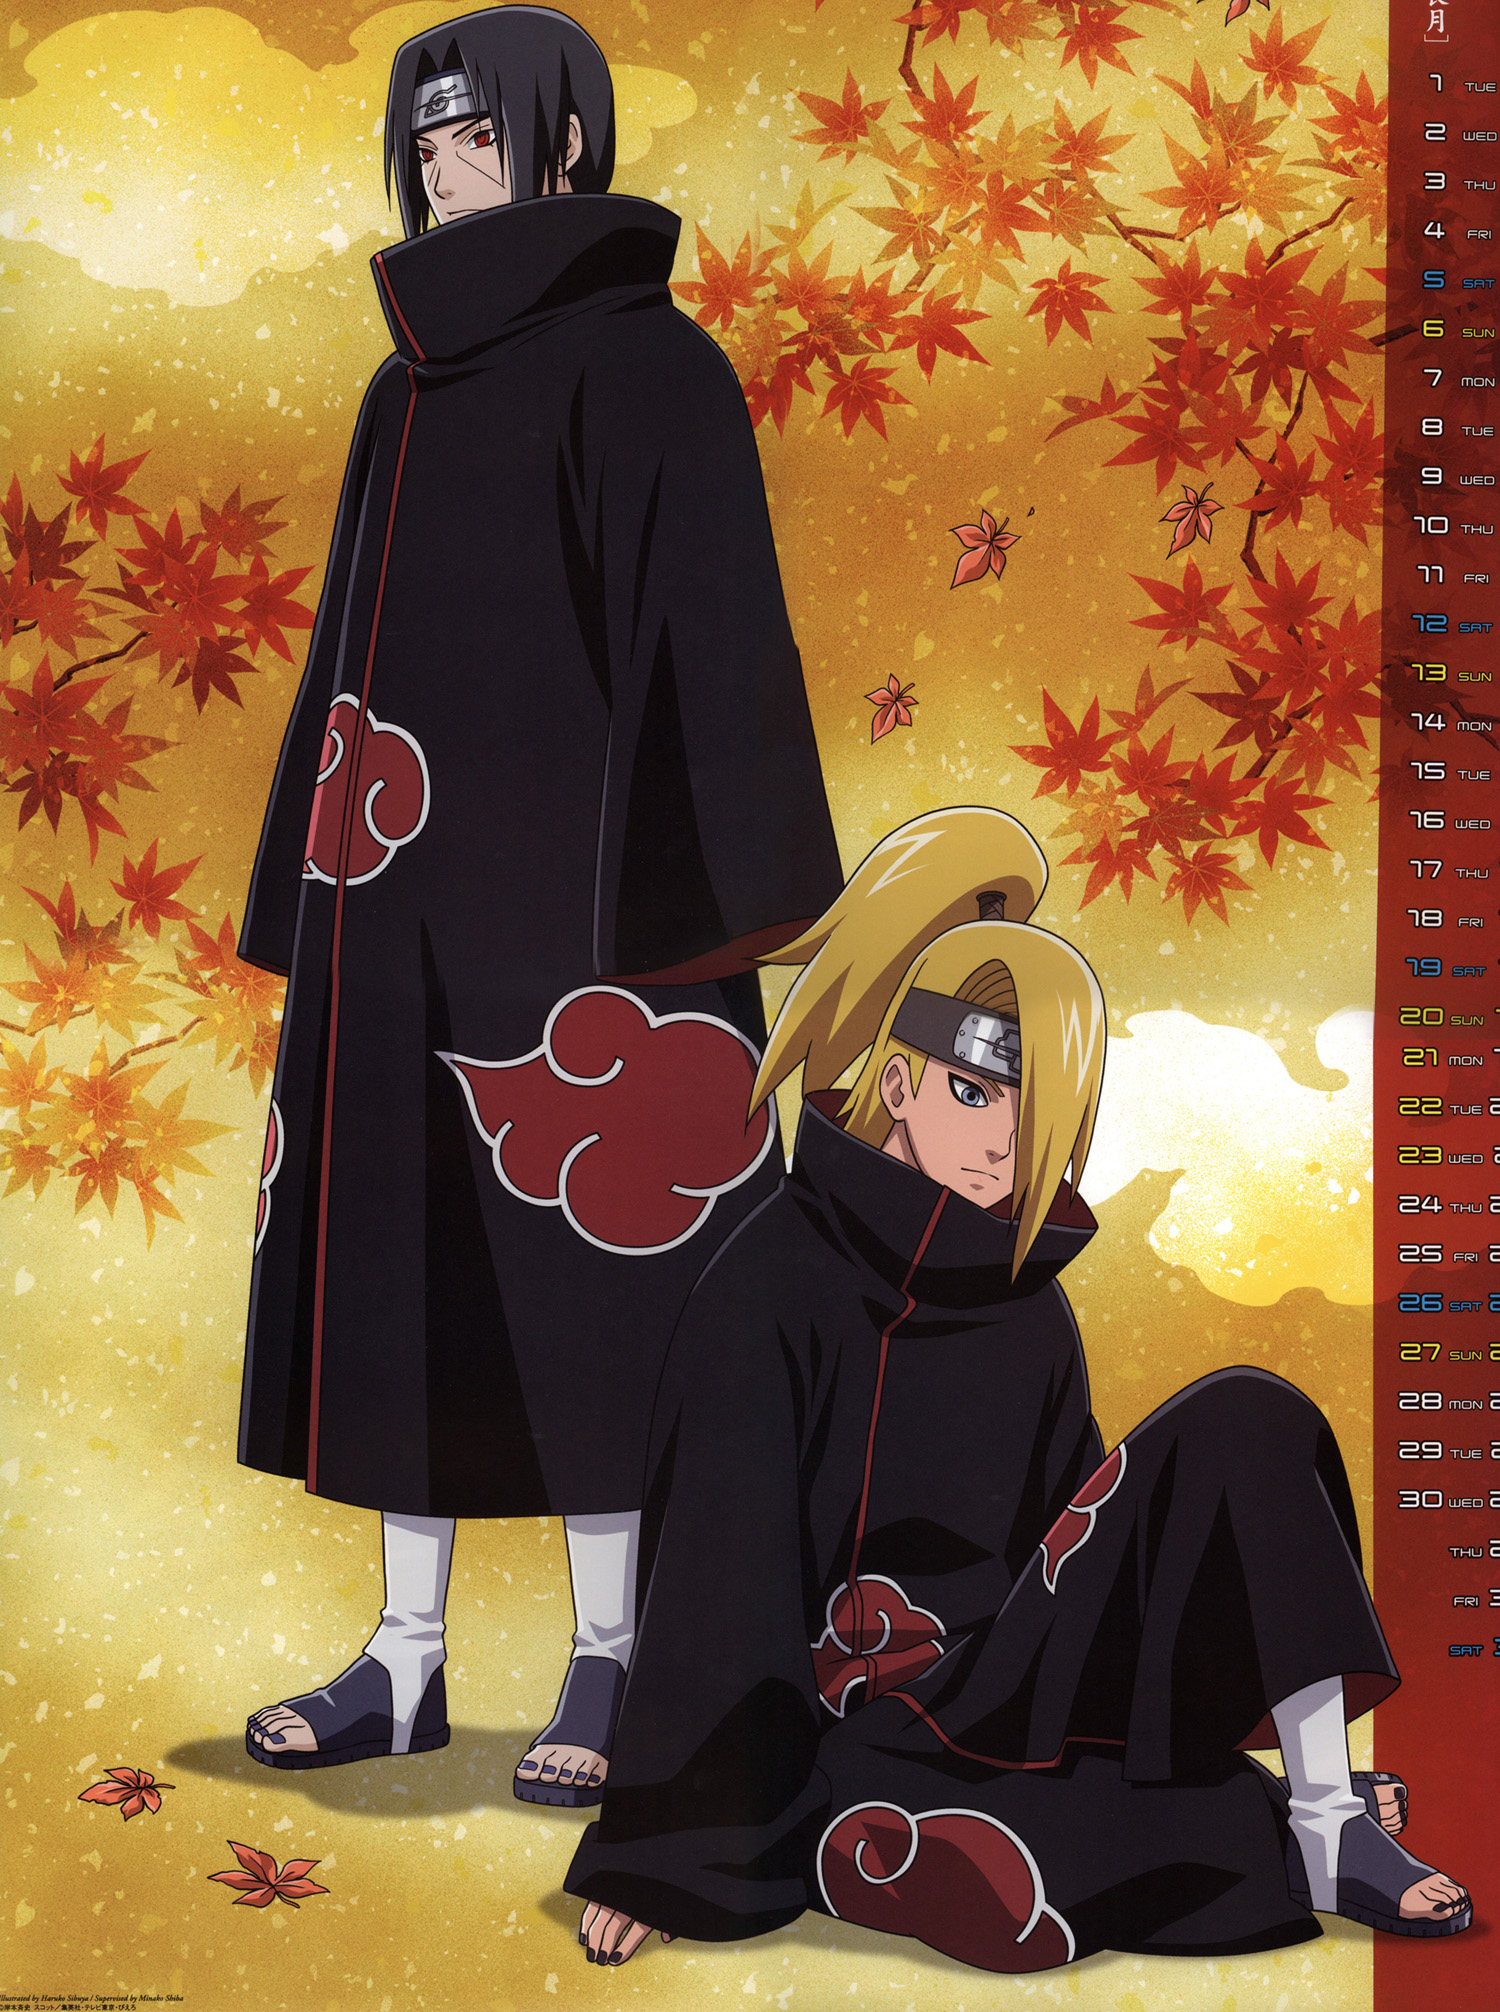 42+] Deidara Wallpaper HD on WallpaperSafari